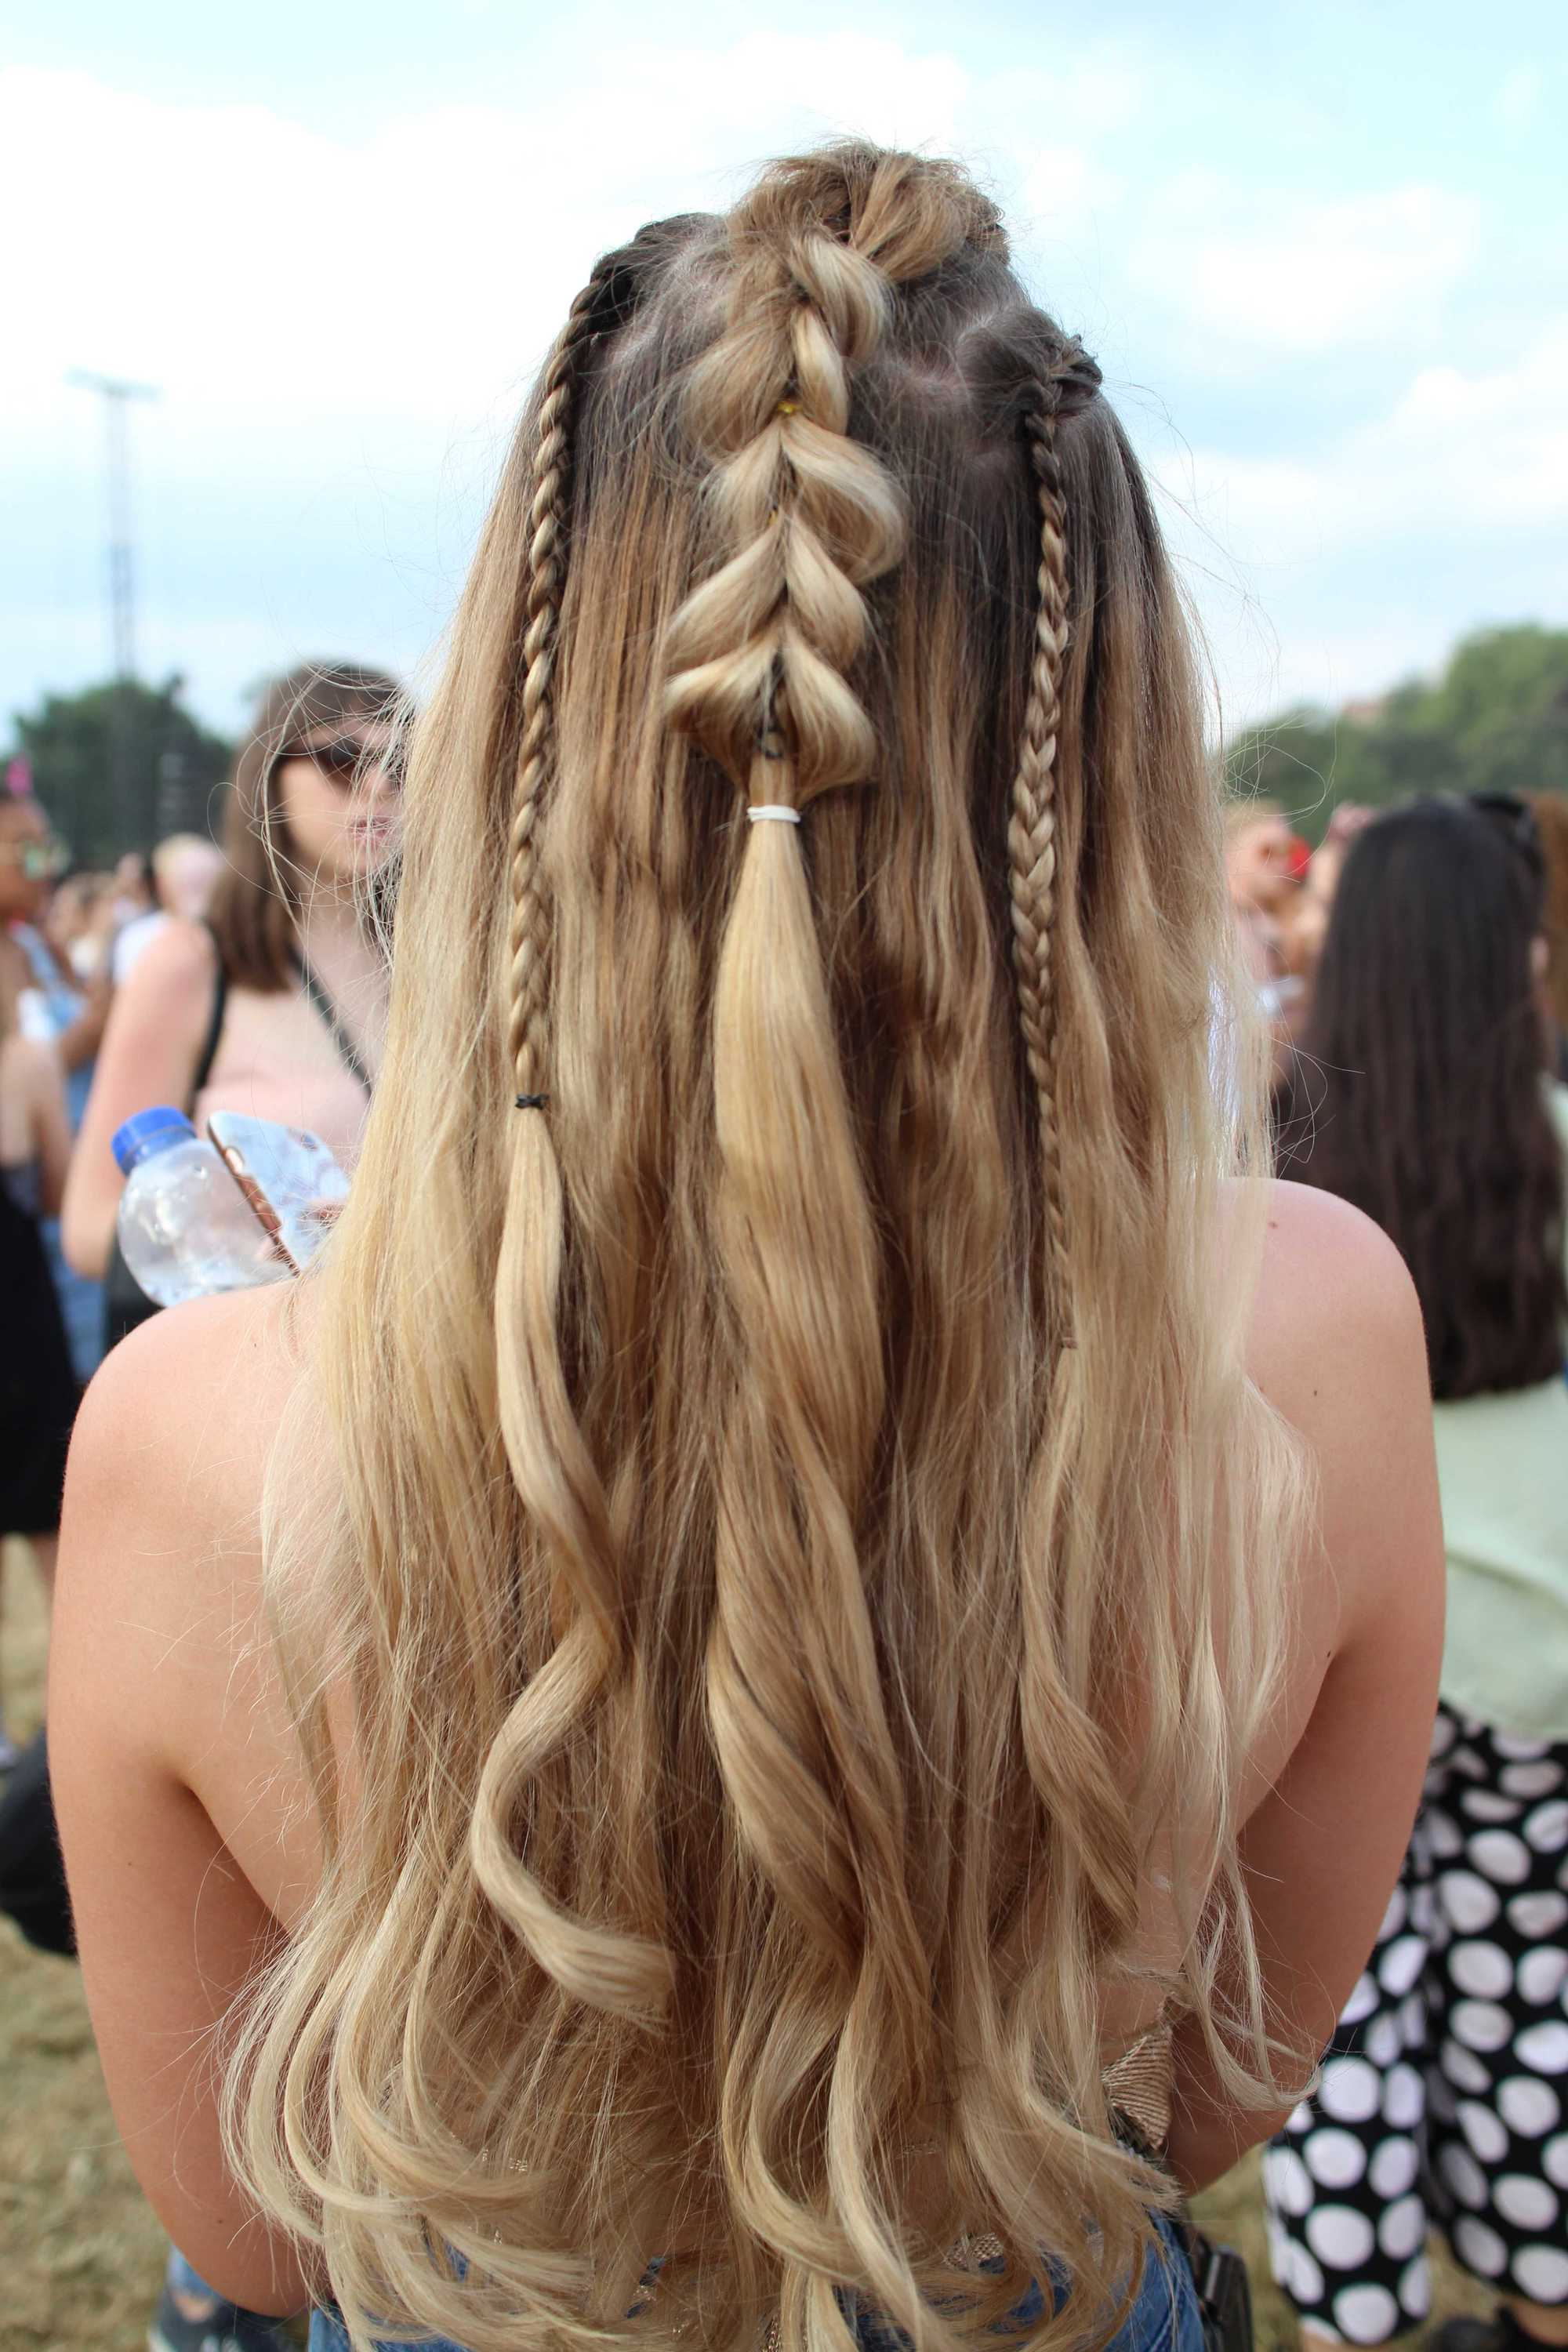 Favorite Blue Braided Festival Hairstyles In 19 Festival Braids It Girls Will Be Wearing This Summer (Gallery 17 of 20)